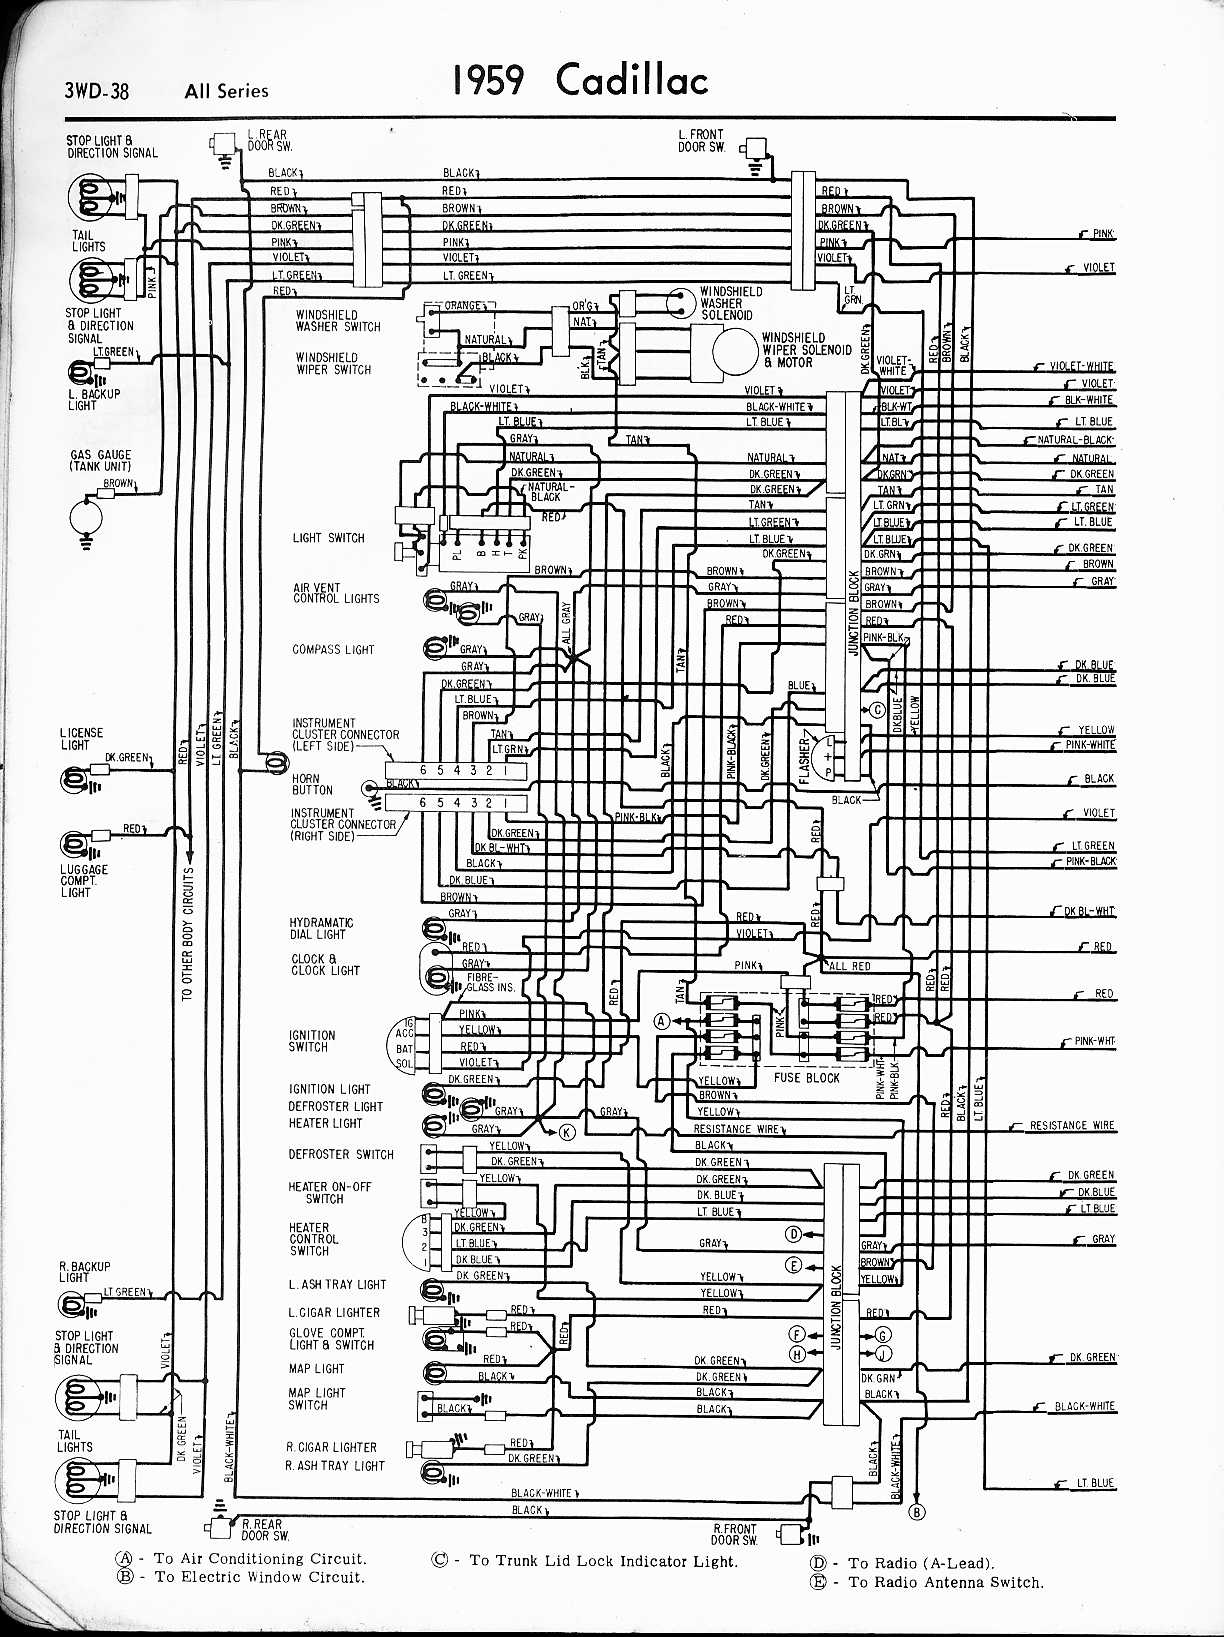 1959 cadillac radio wiring diagram